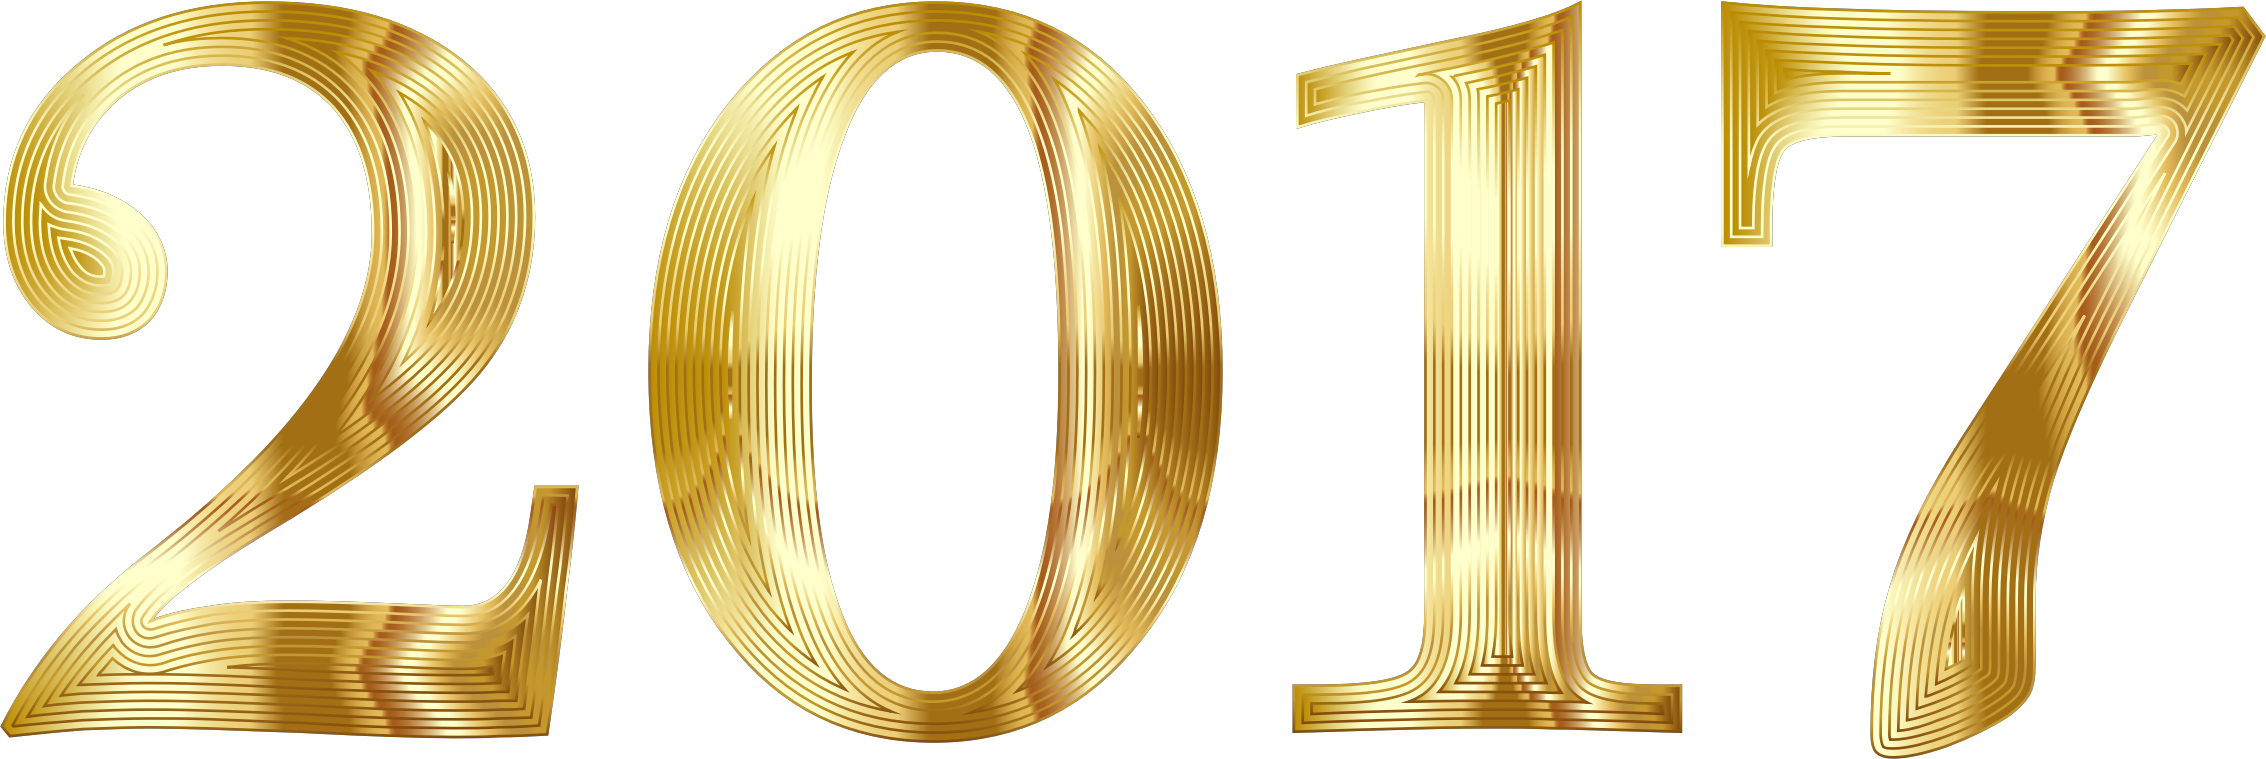 2017 clipart transparent background. Gold typography no icons